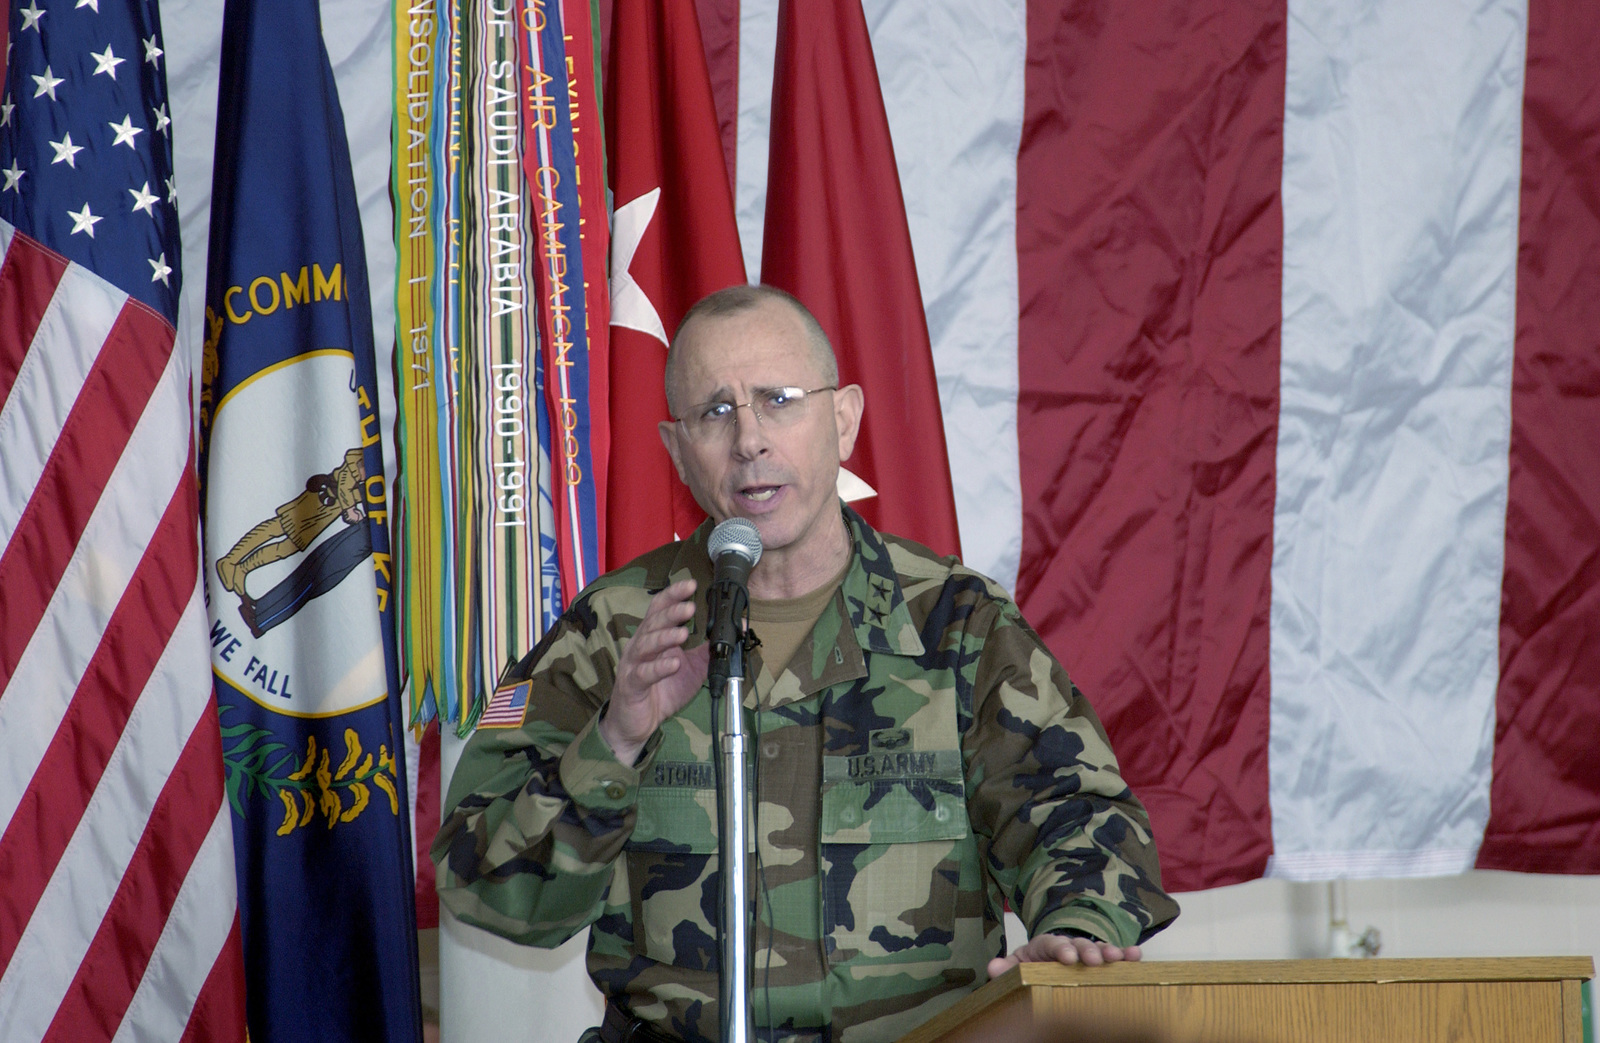 MAJ. GEN. Donald C. Storm, Adjutant General of Kentucky Army National Guard,  welcomes the 2123rd Transportation Company back home from Iraq at the 123rd Airlift Wing, Standiford Field, Louisville, Ky., on Feb. 6, 2005. (U.S. Air Force PHOTO by MASTER SGT. Mark Hines) (Released)